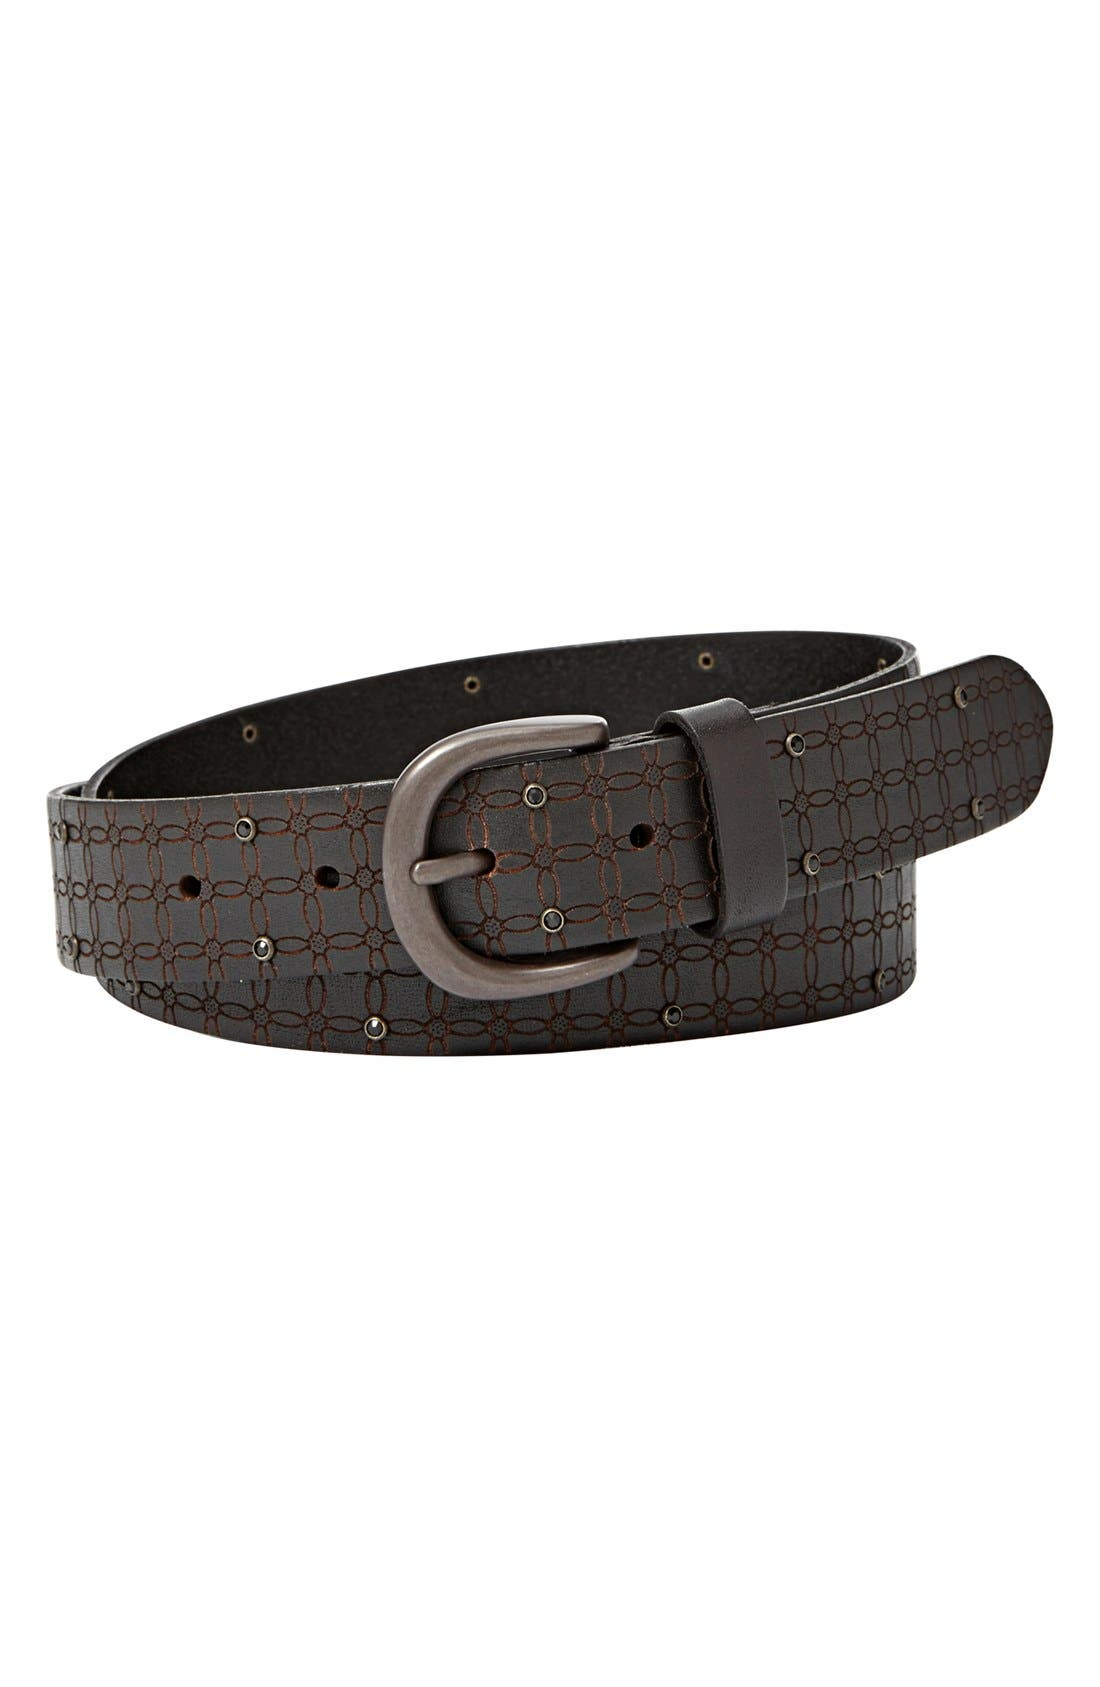 Alternate Image 1 Selected - Fossil Crystal Accent Leather Belt